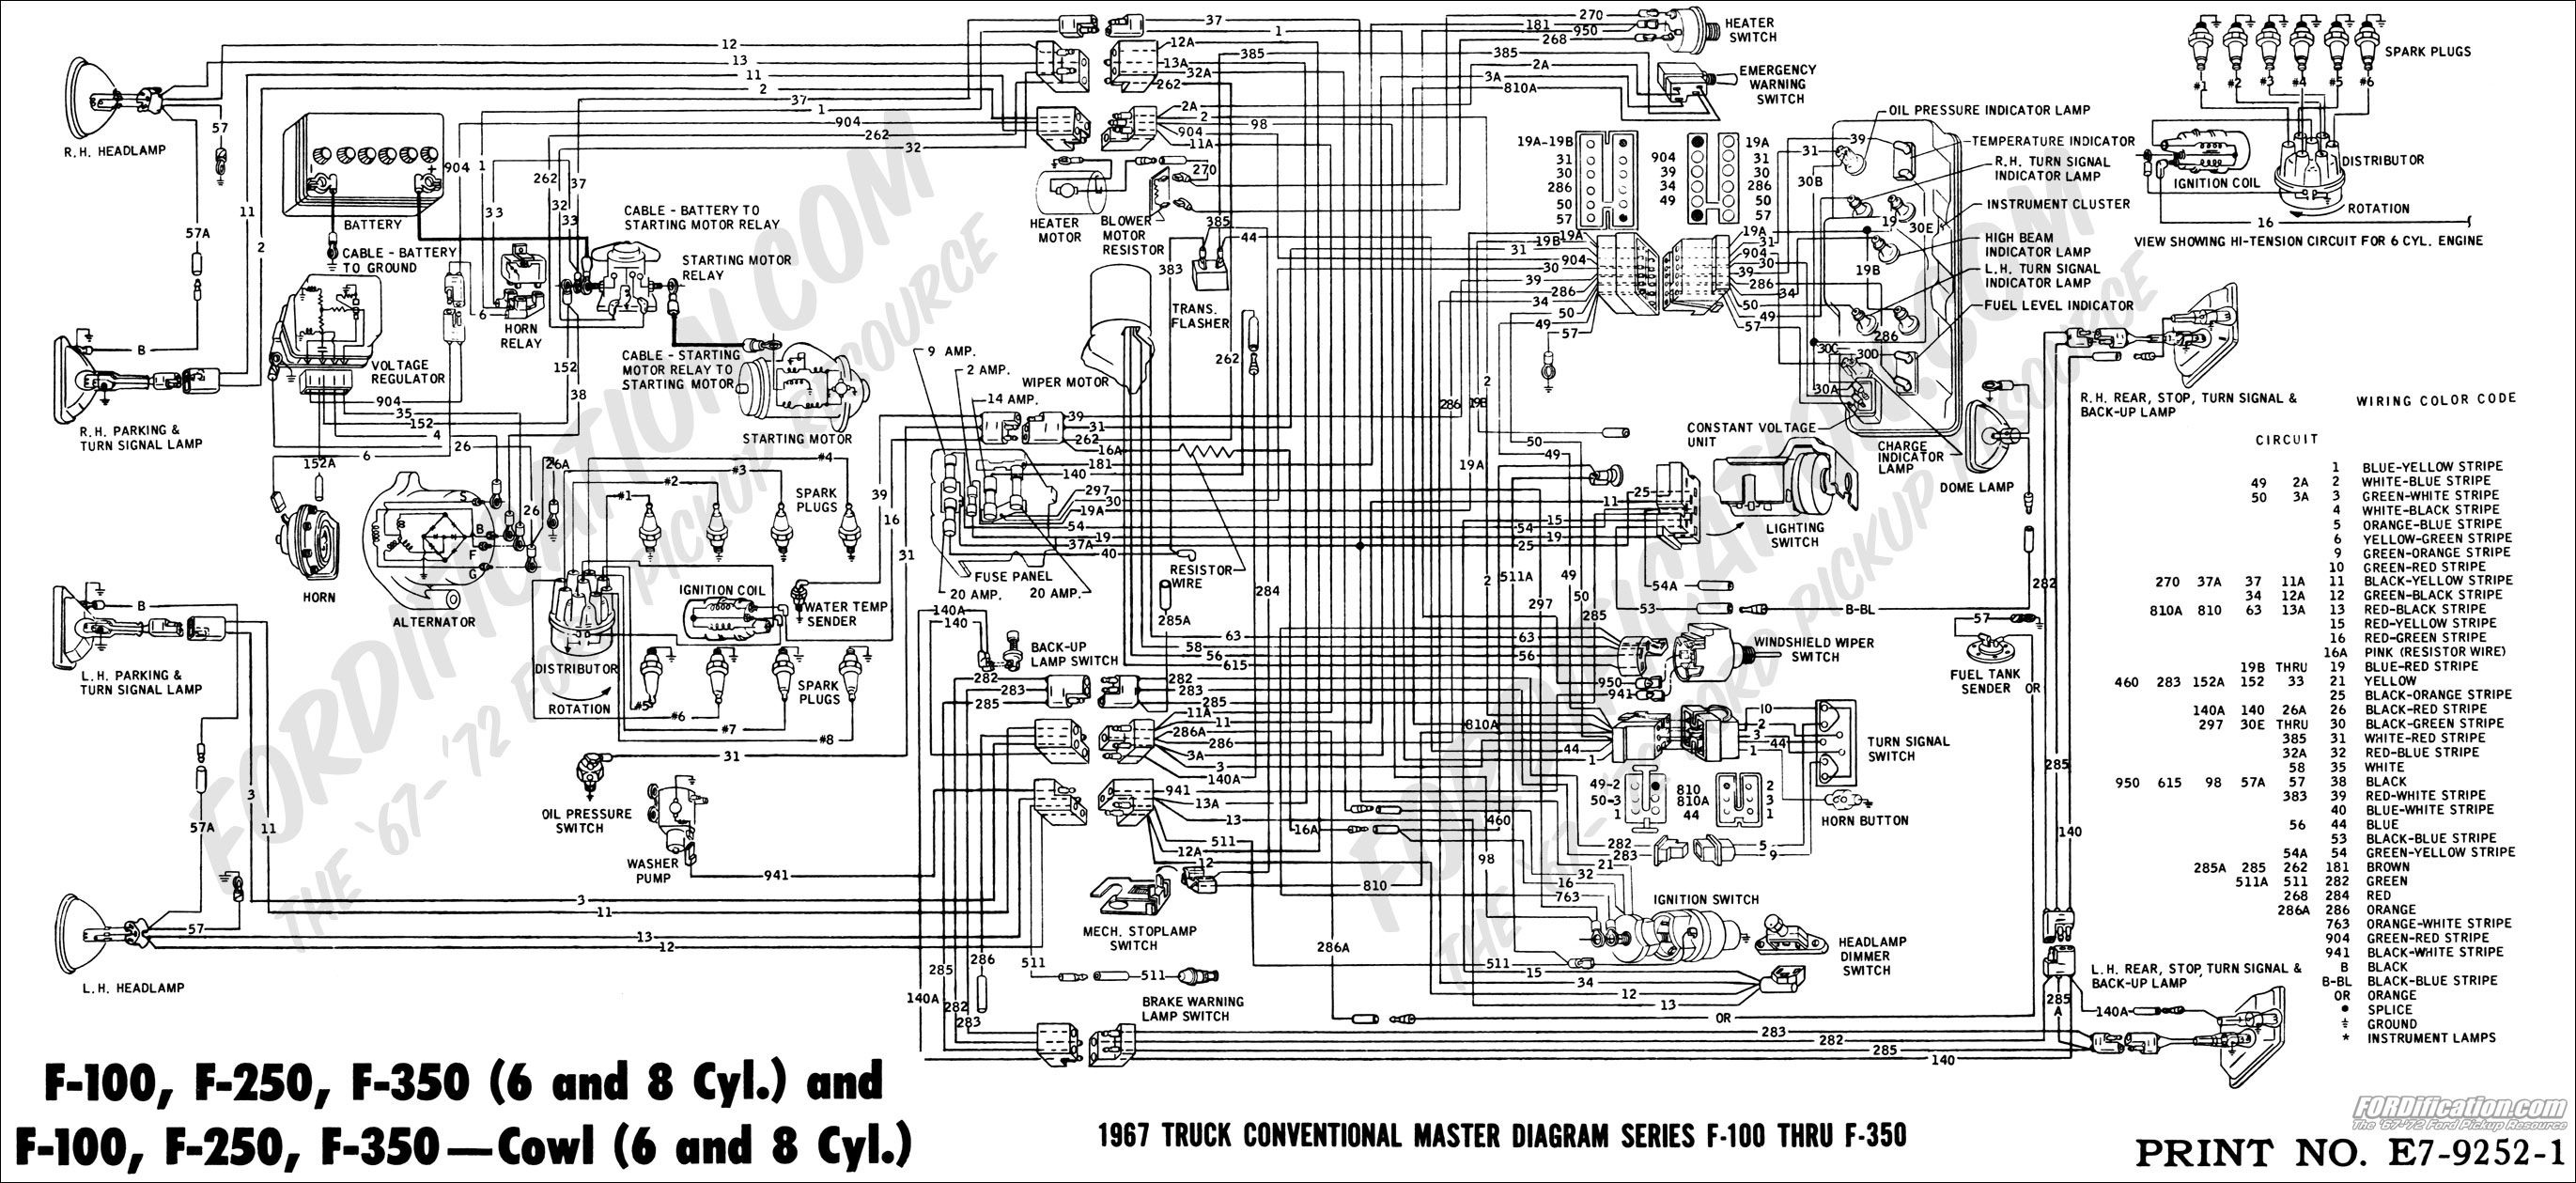 wiring diagram for a 2000 ford f150 the wiring diagram 2000 ford f 150 wire schematics nilza wiring diagram